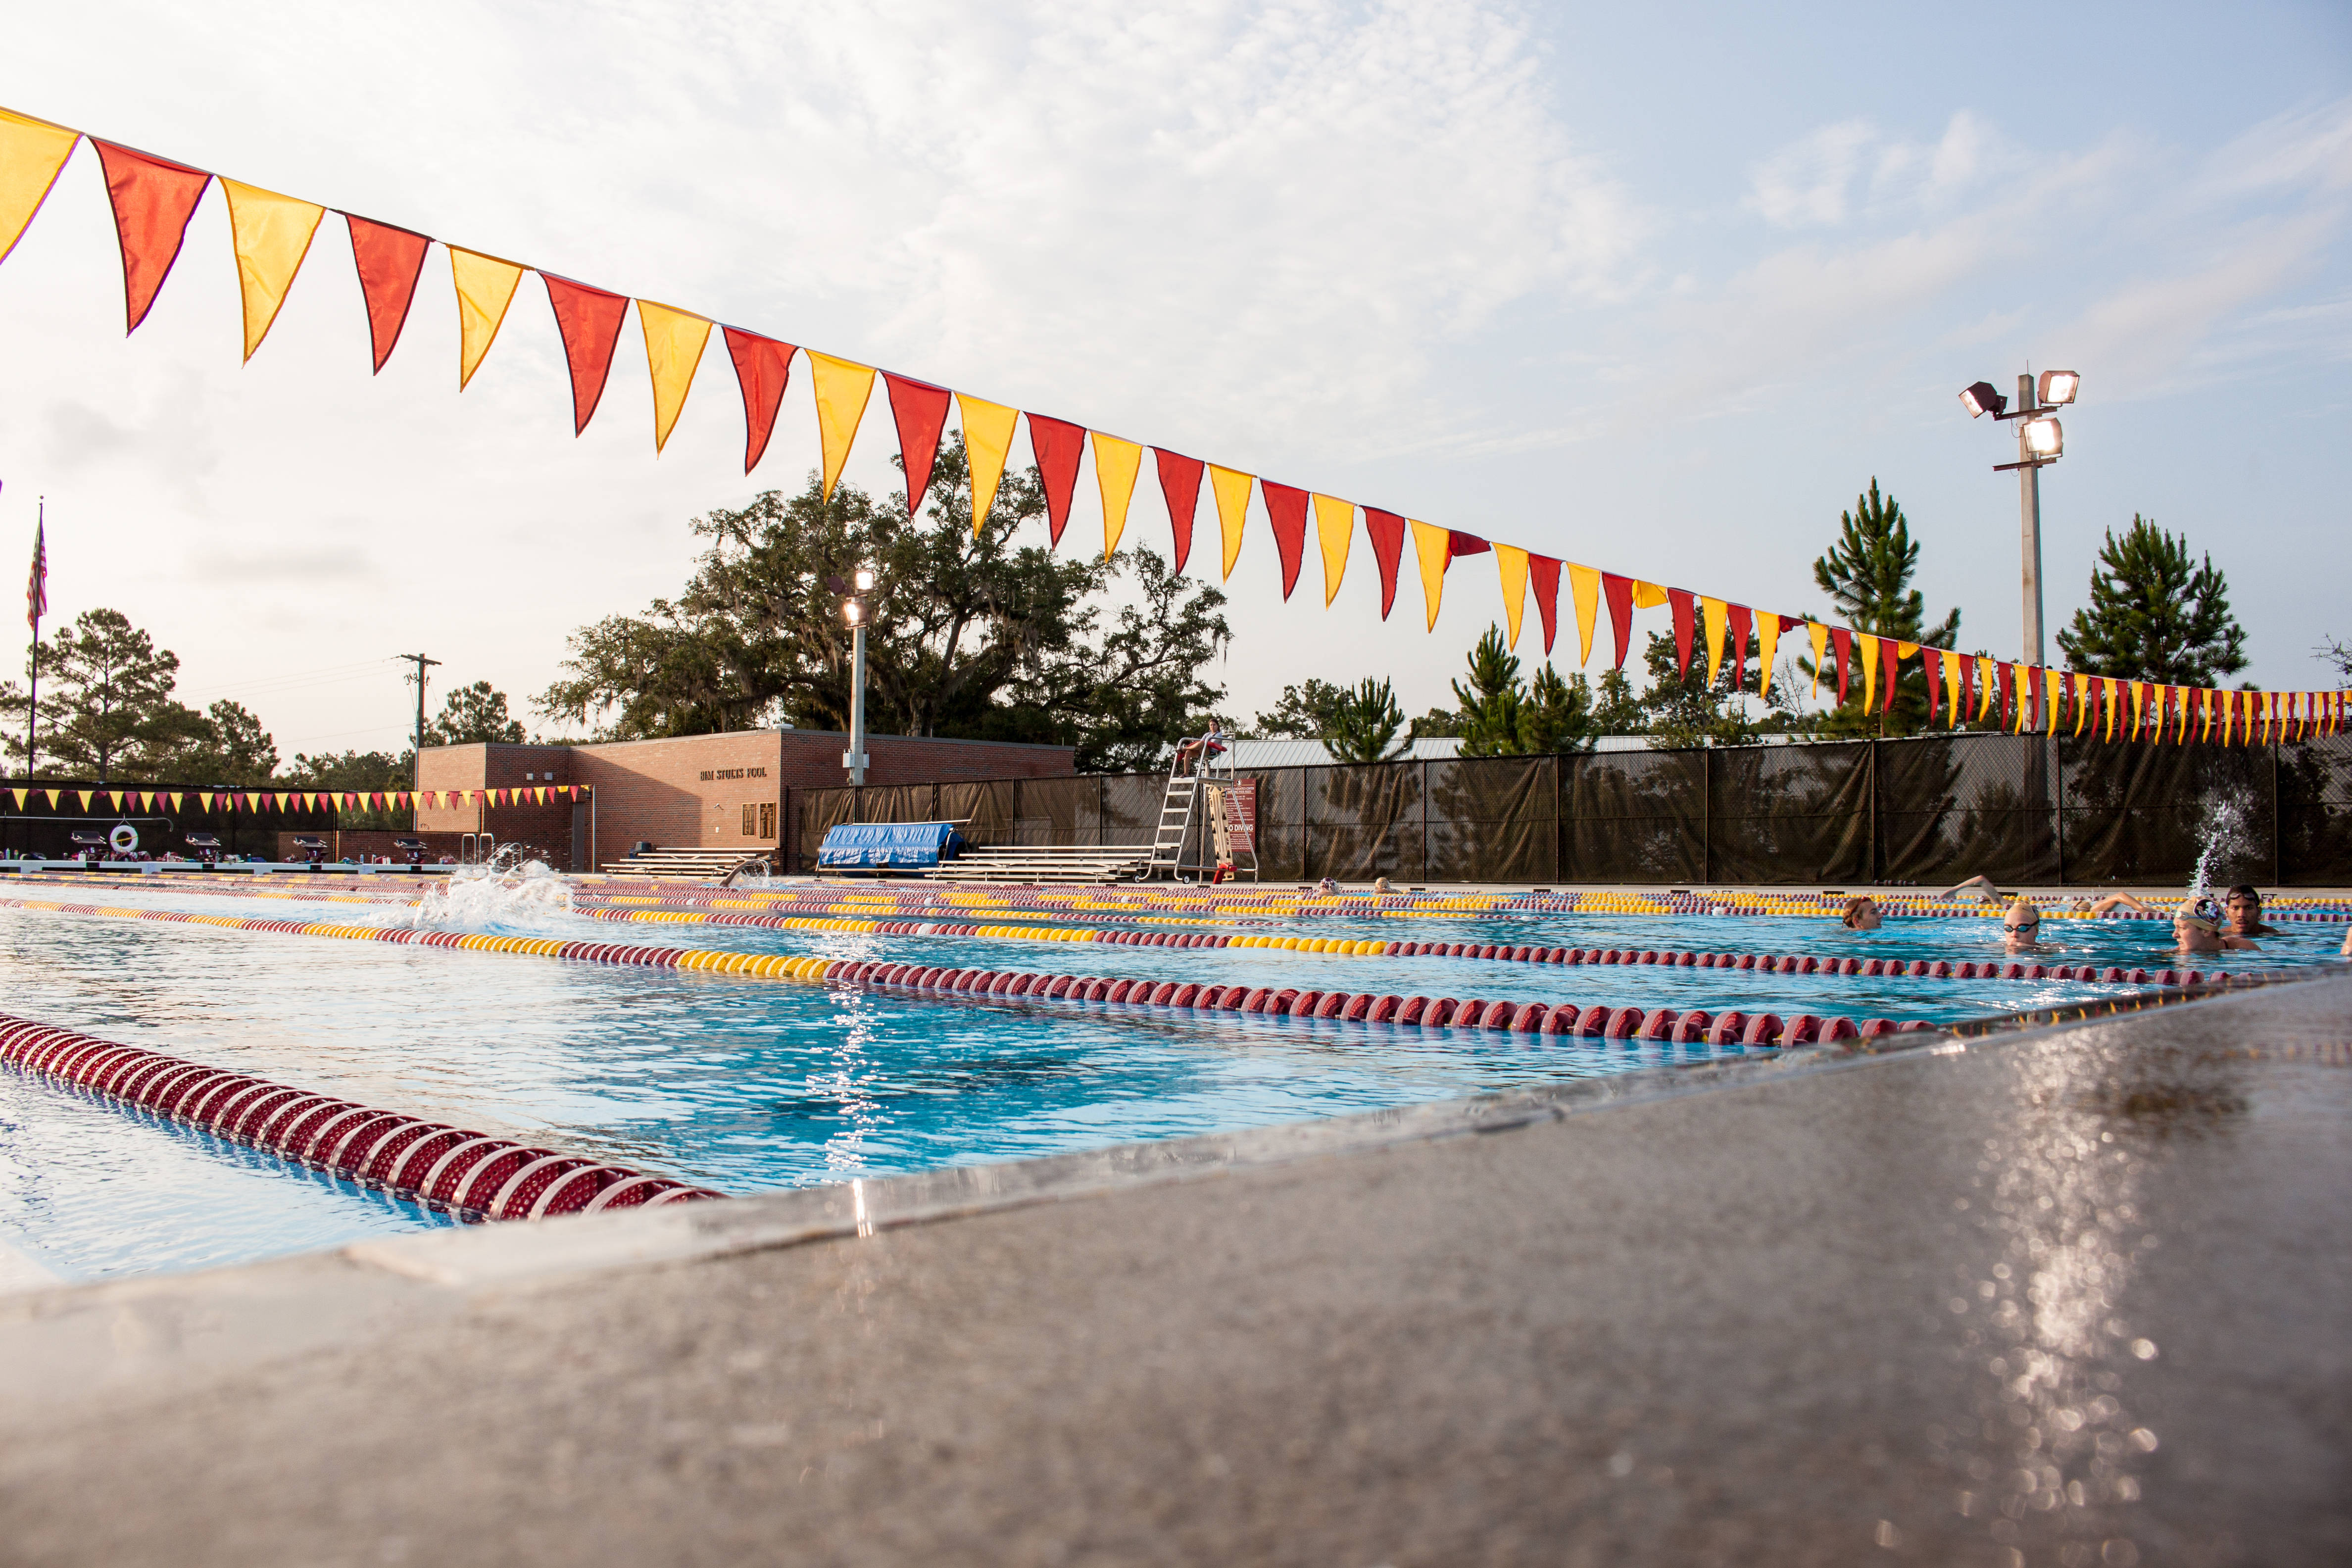 Another view of the Morcom Aquatics Center set up for Long Course Meters.